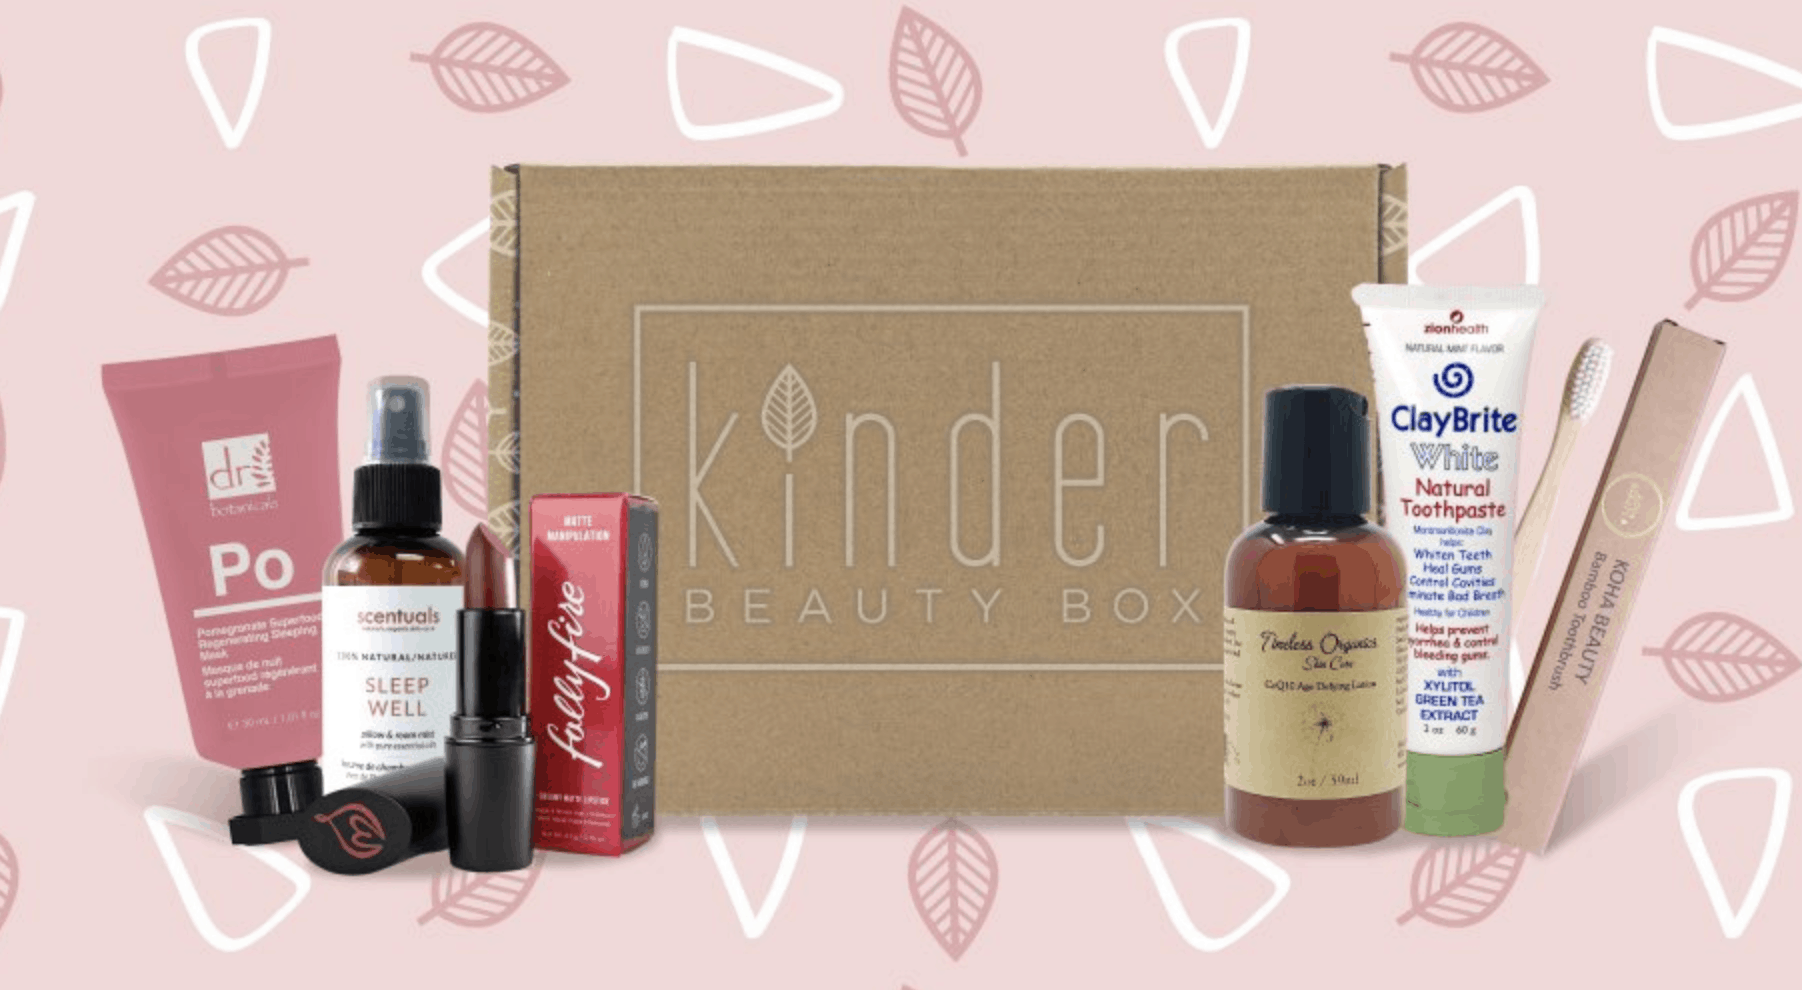 Kinder Beauty Box Sale: Save $7!